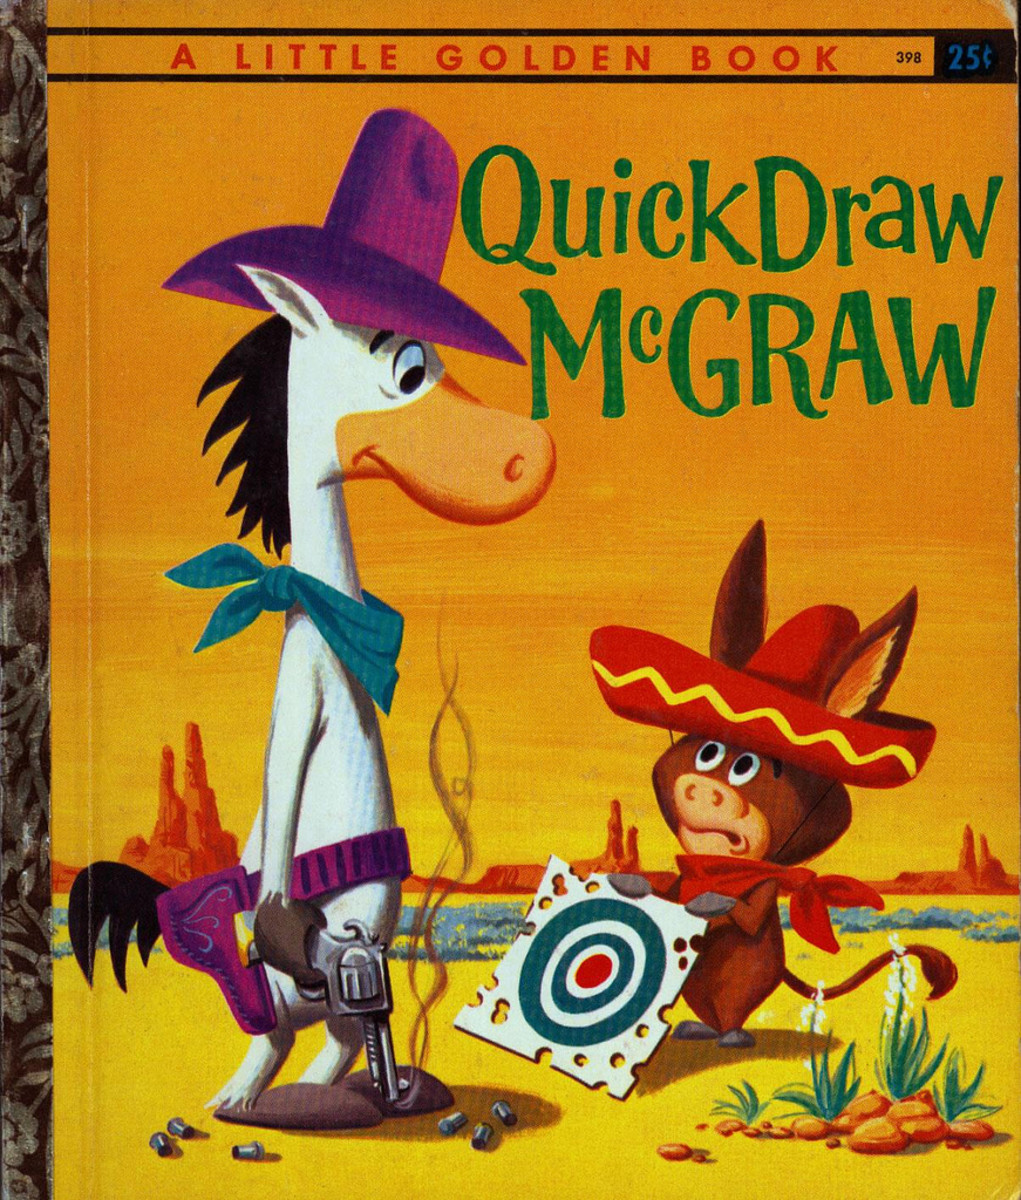 history-of-hanna-barbera-part-3-the-quick-draw-mcgraw-showloopy-de-loop